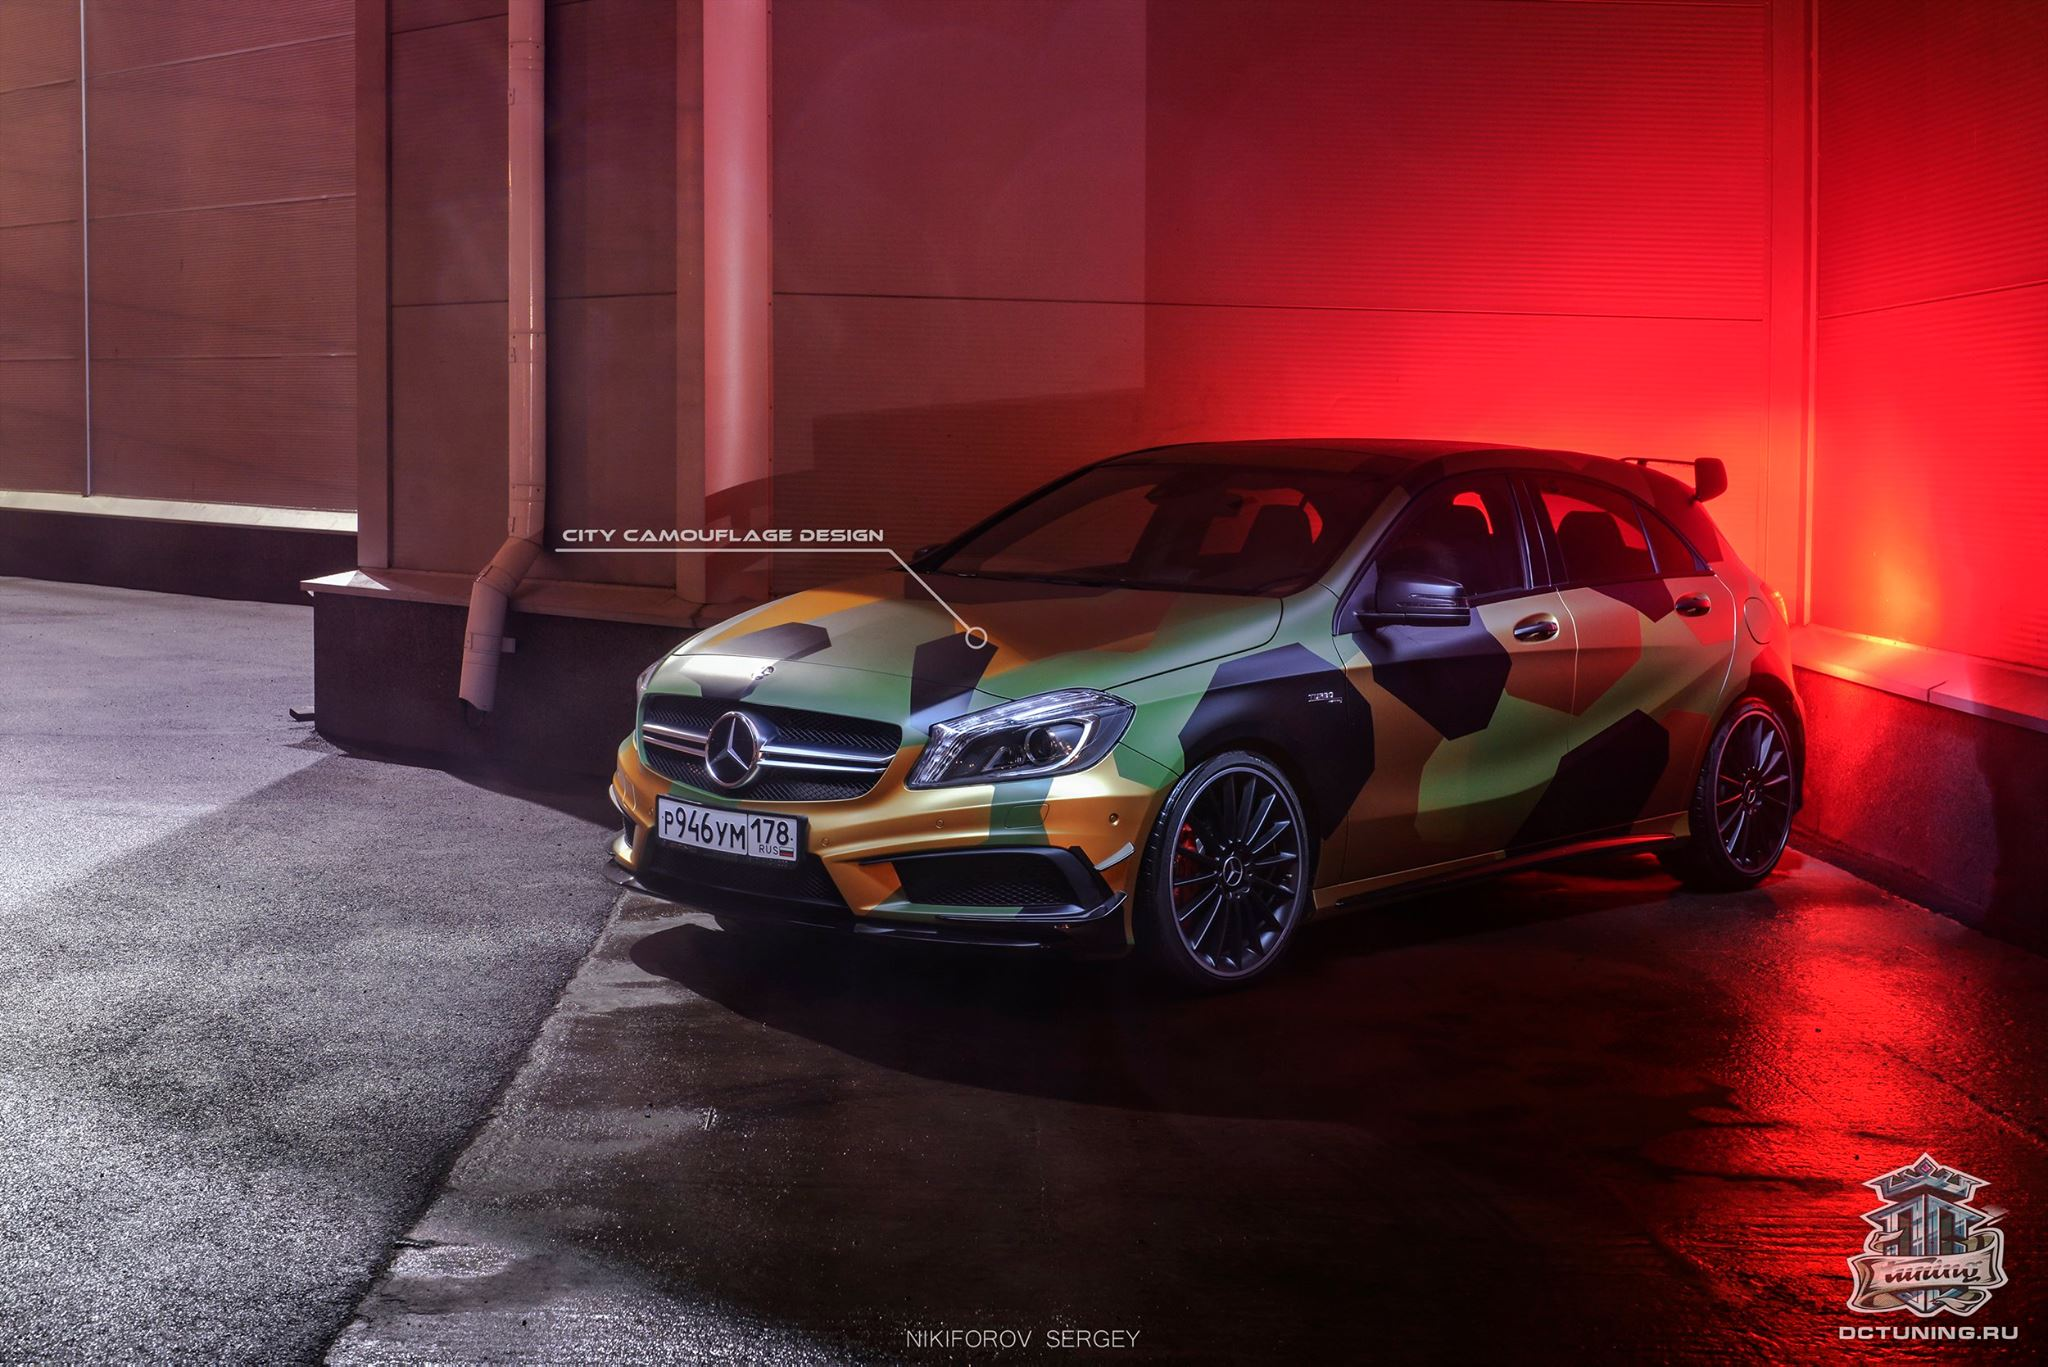 A45 AMG Gets City Camouflage Wrap from DC Tuning Russia ...